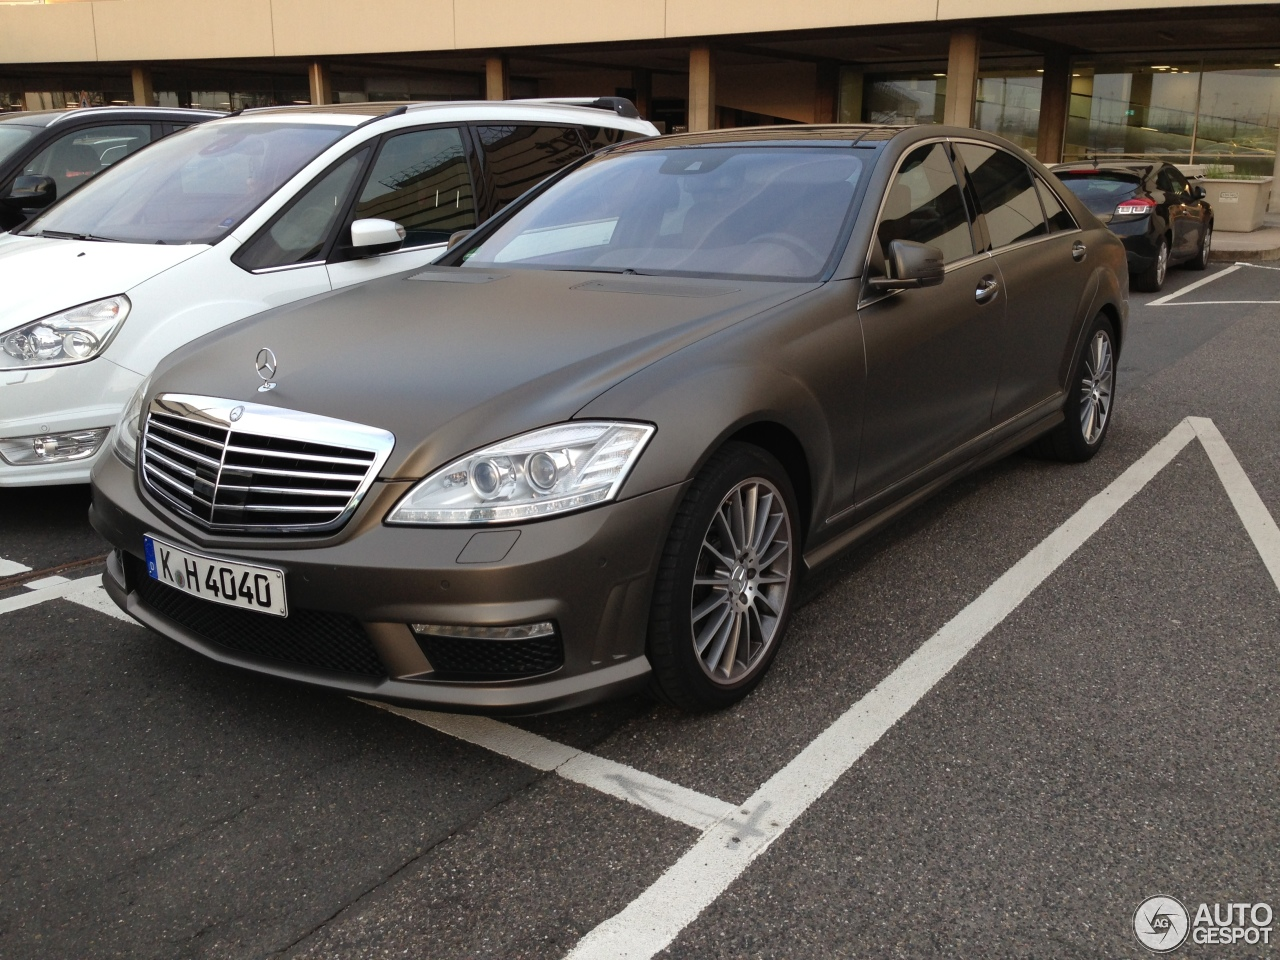 Mercedes benz s 63 amg w221 2010 24 april 2013 autogespot for Mercedes benz w221 price